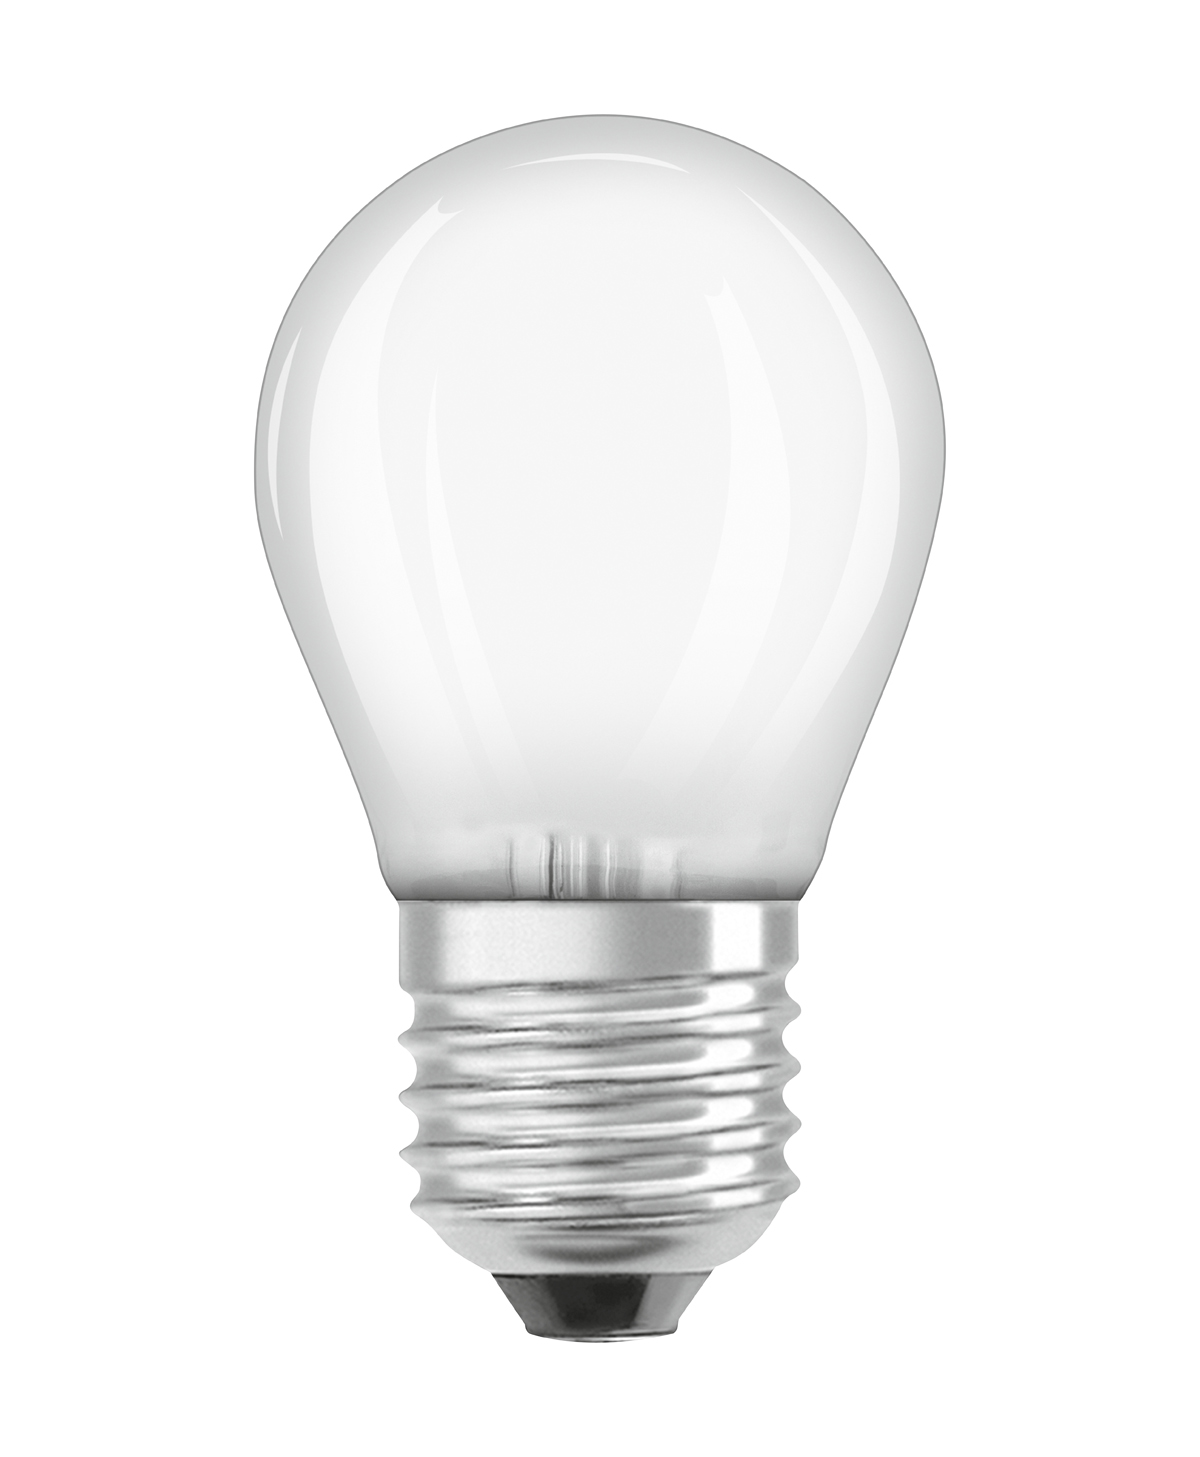 Philips Led Lampen Gu10 Ampoule Led Philips Gu10